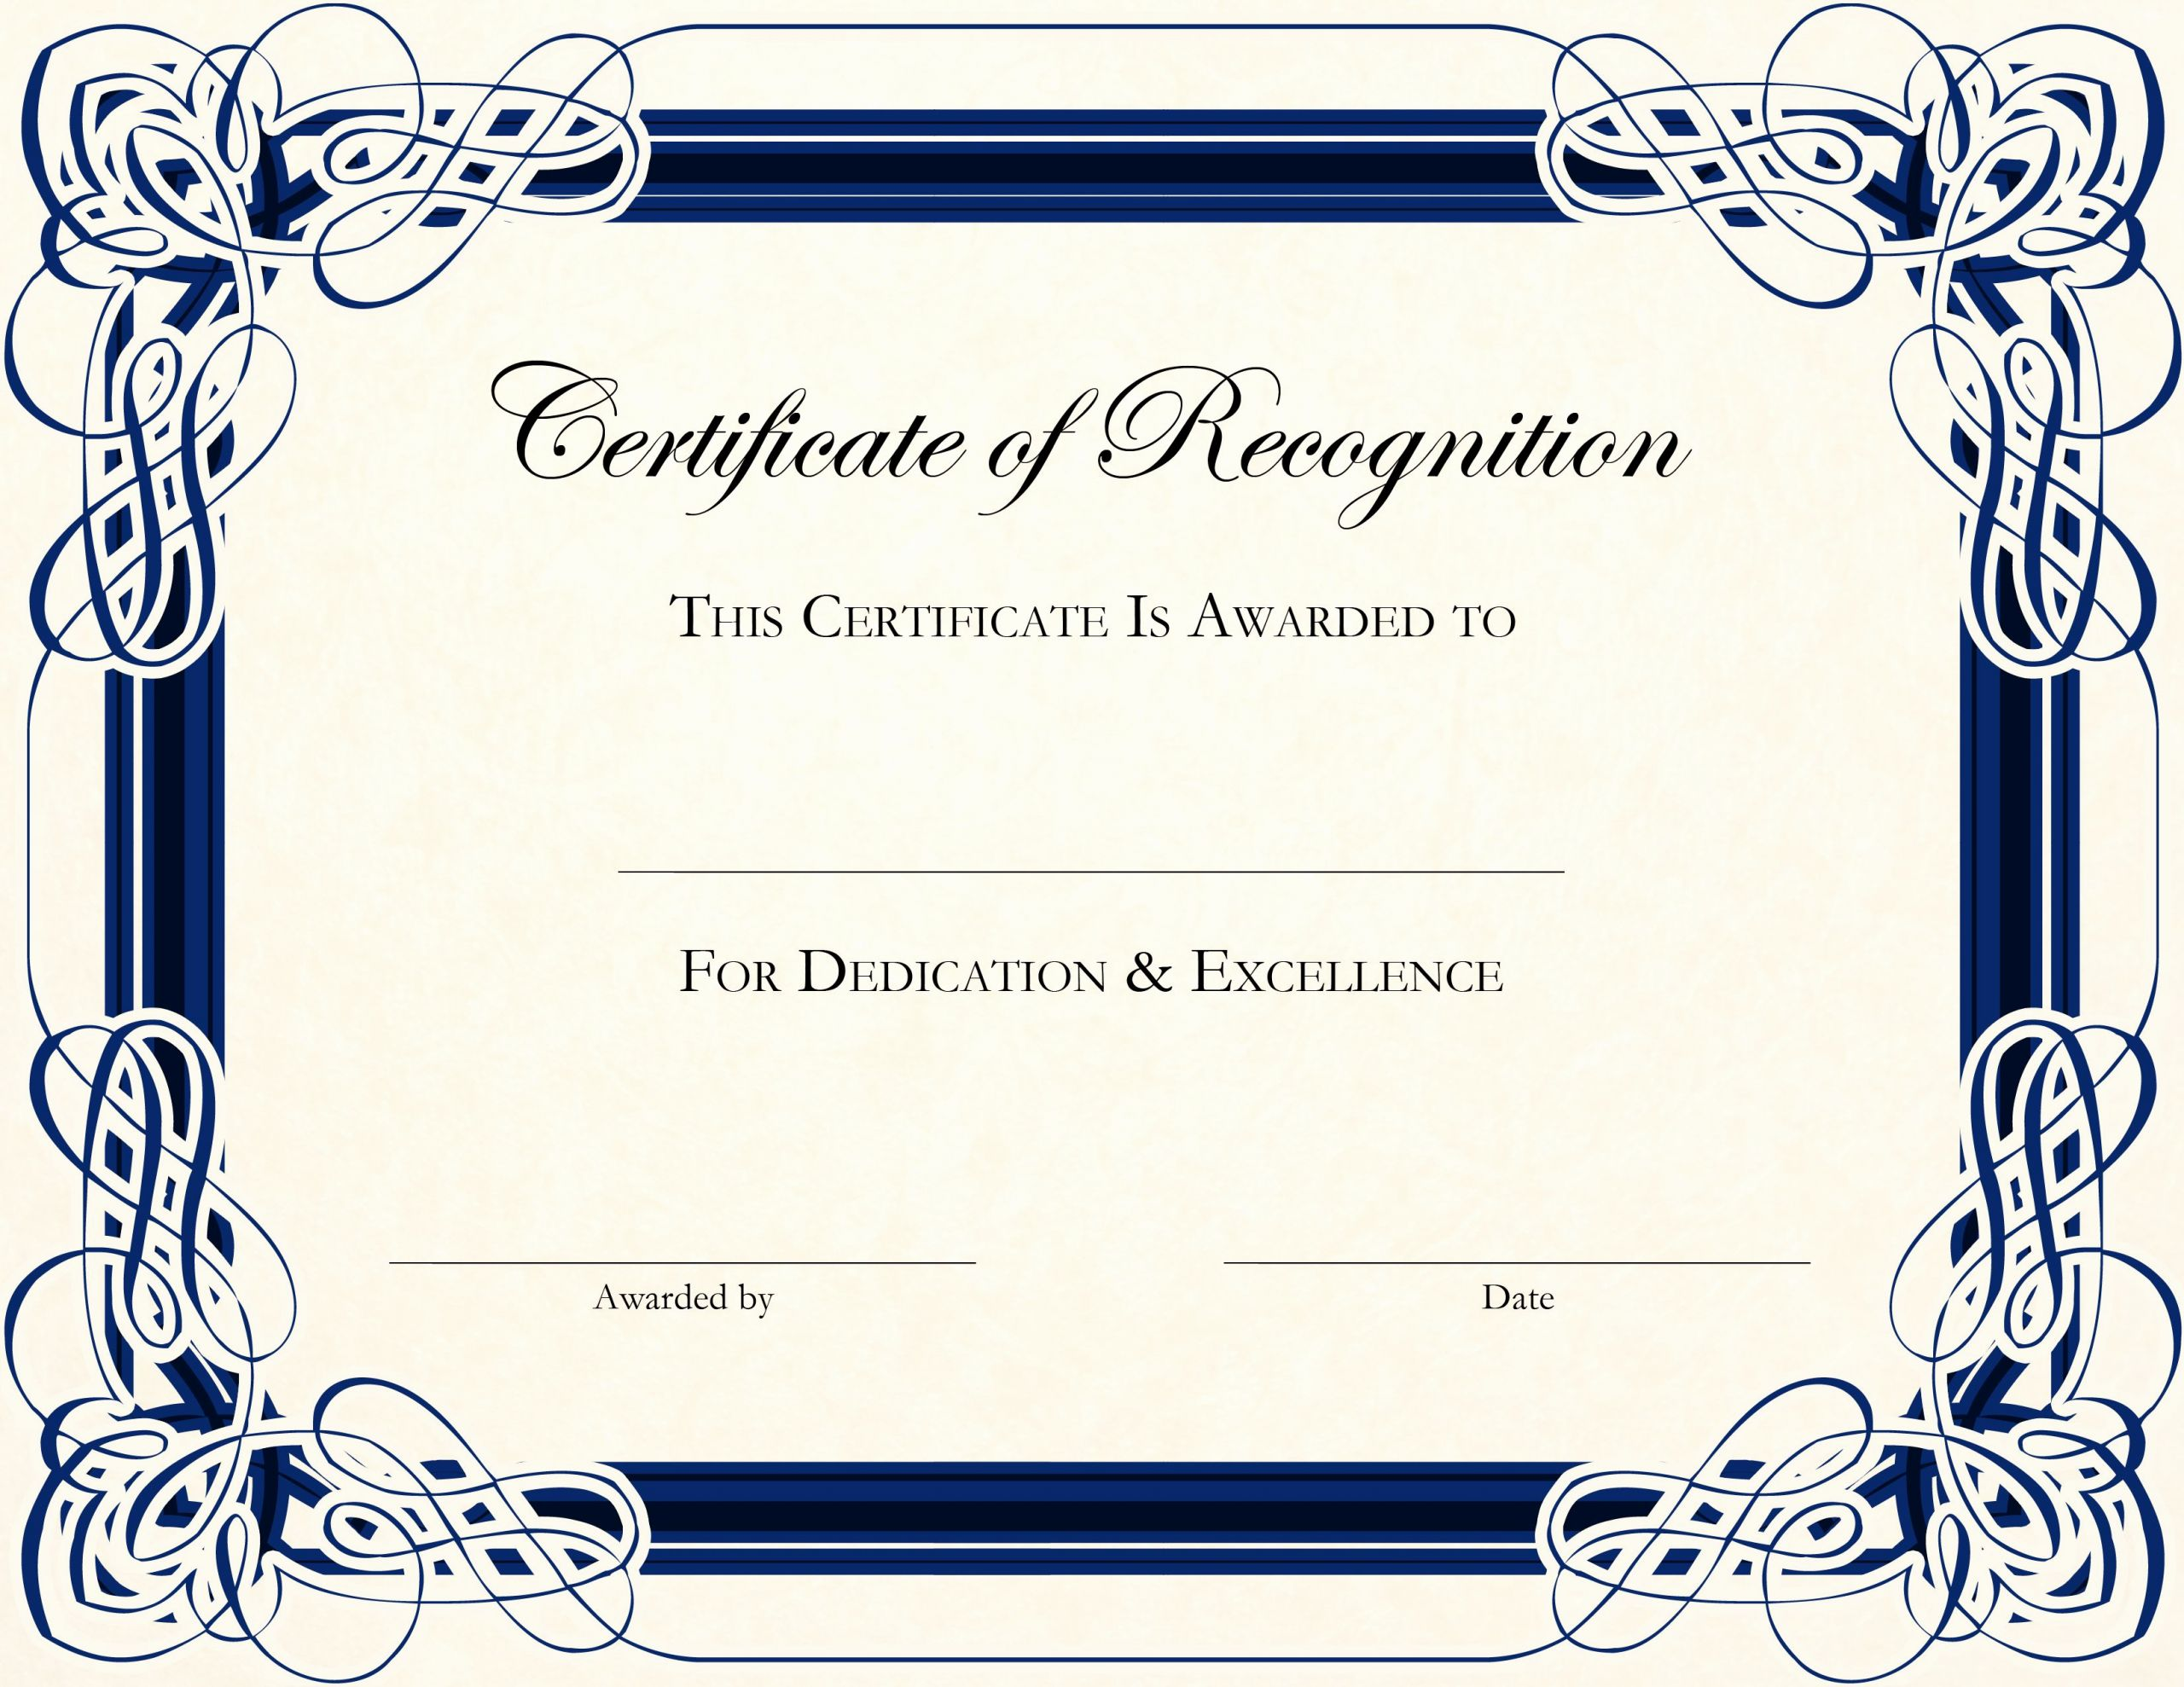 Pdf Certificate Template Free Awesome Certificate Template Designs Recognition Docs